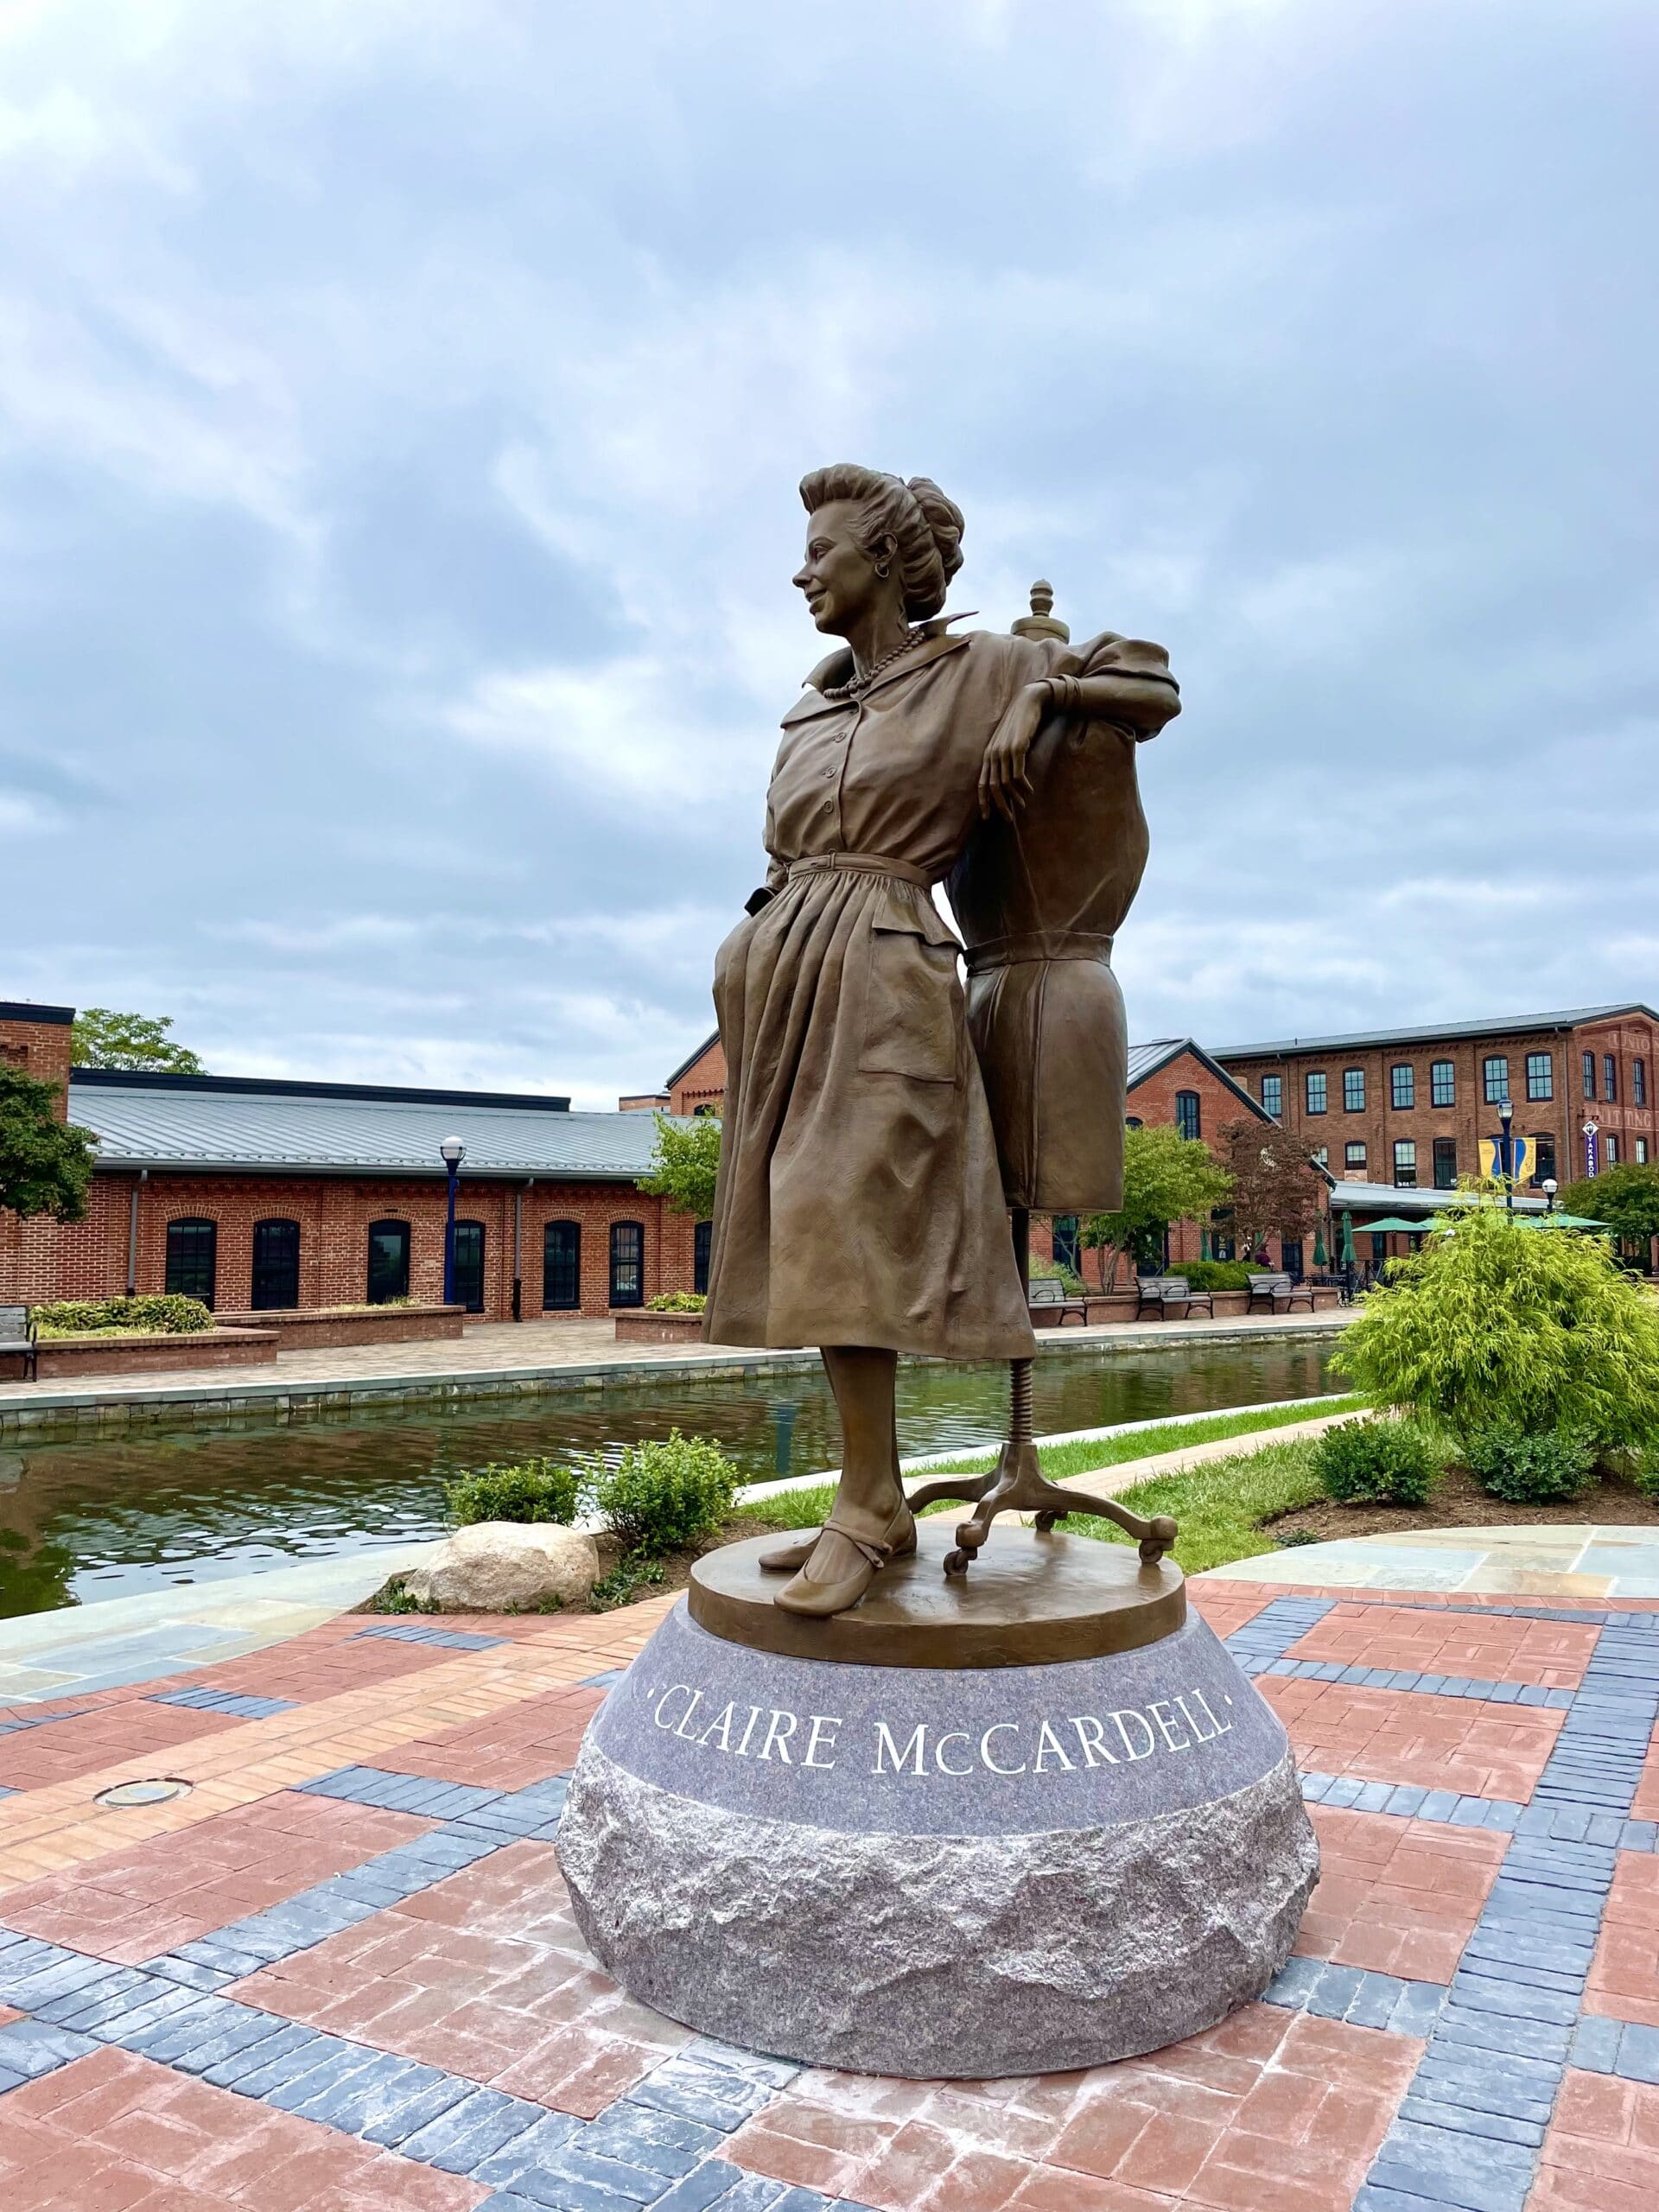 Claire McCardell |  7.5' Bronze |  Carroll Creek Park, Frederick, Maryland